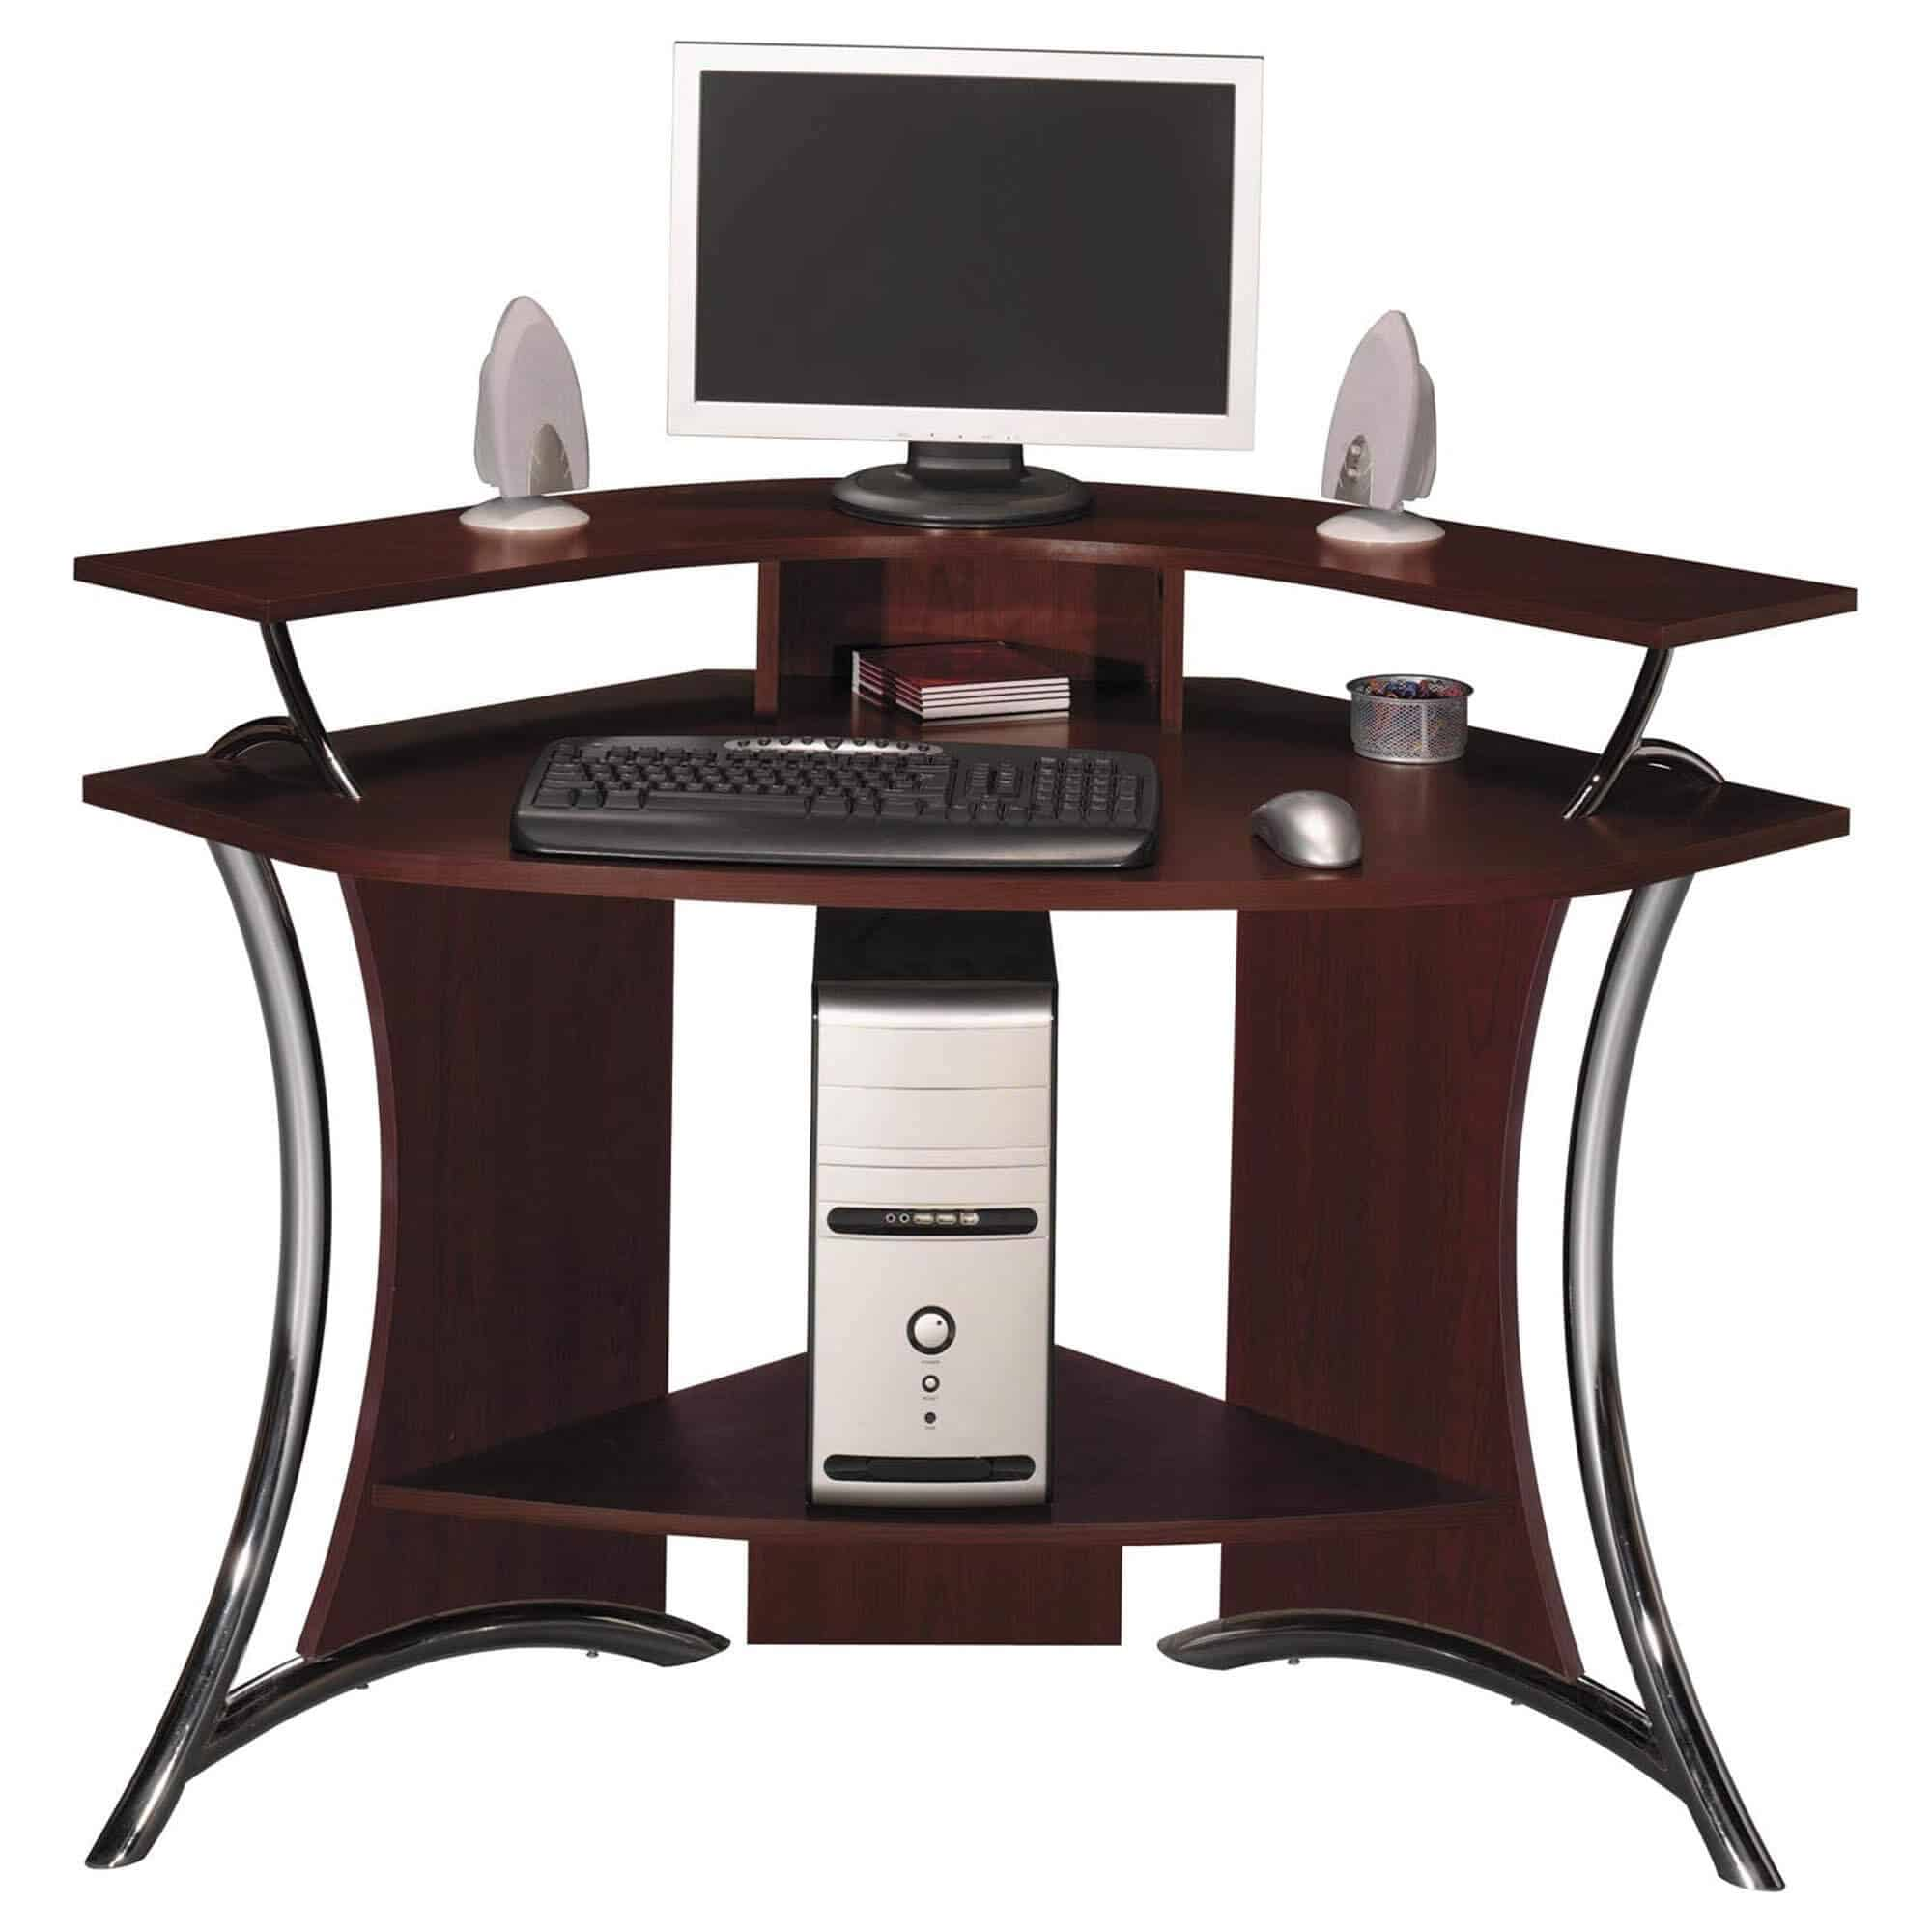 The Office Desk Guide — Gentleman's Gazette. Alex Toys Art Desk. 30 Round Coffee Table. Grill Side Table. Changing Table Mattress. Organizing Office Desk. Cool Desk Plants. Best Compact Computer Desk. Tool Chest Drawer Liners